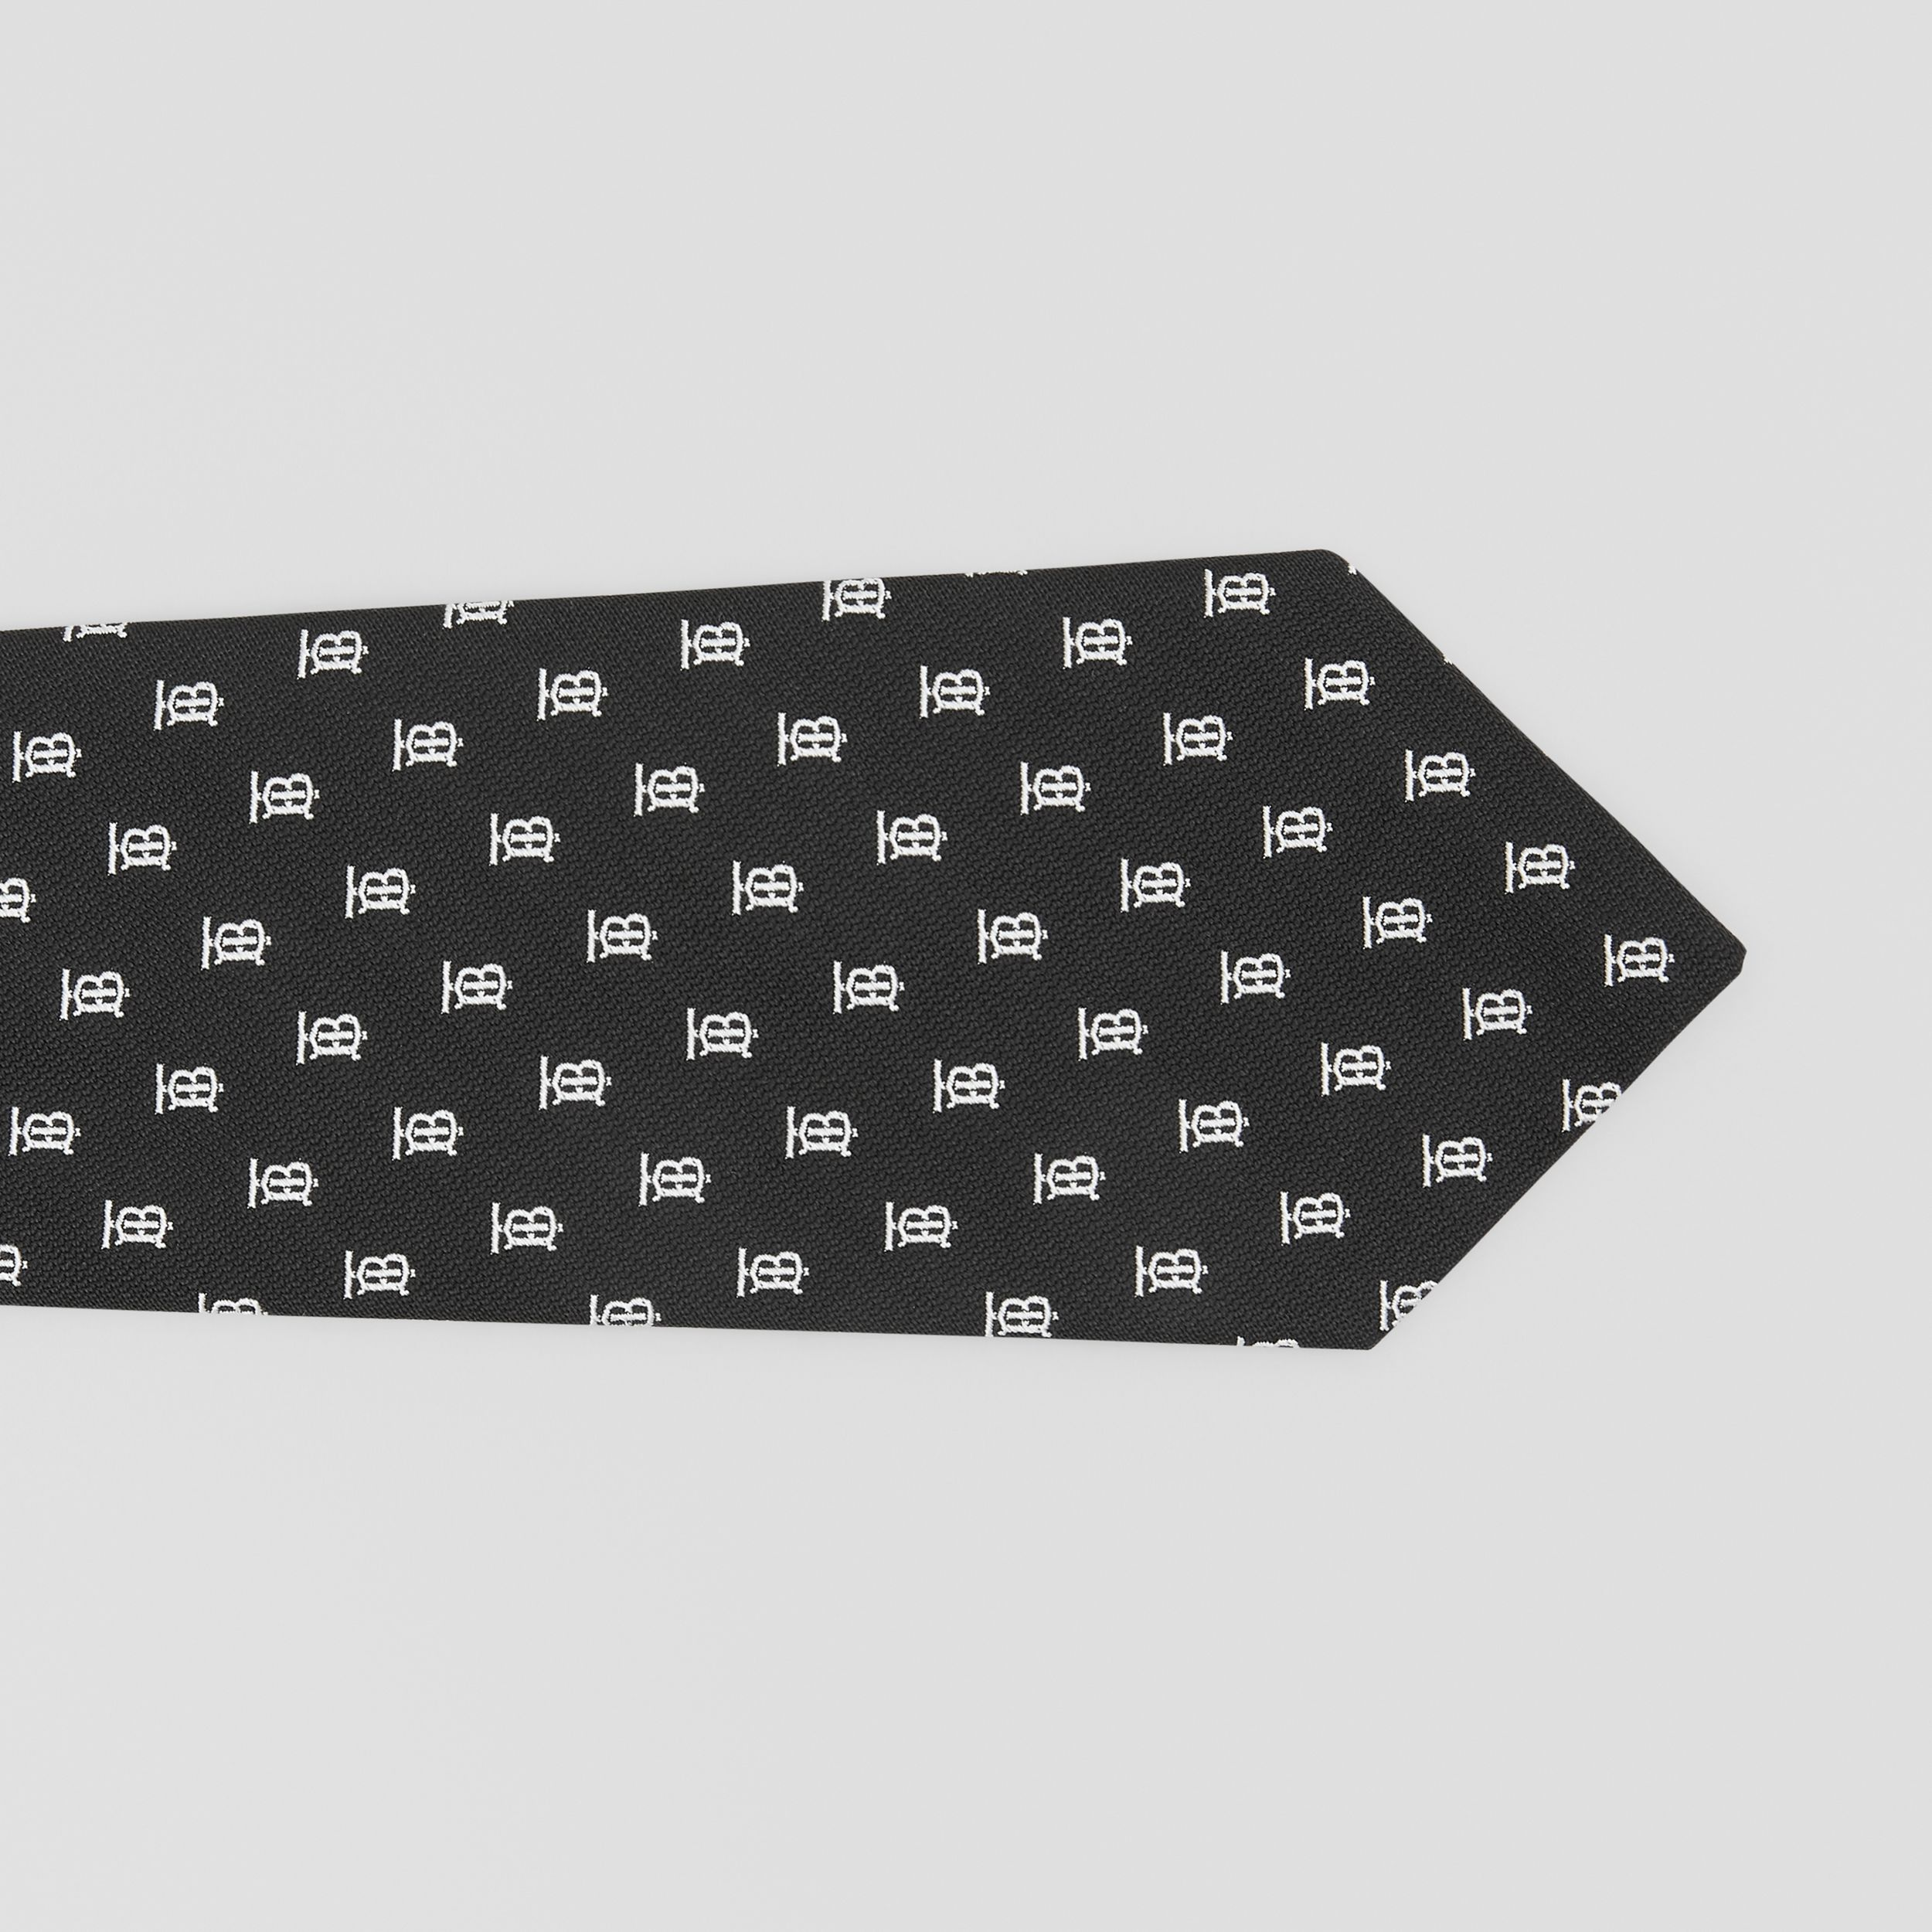 Classic Cut Monogram Motif Silk Jacquard Tie in Black - Men | Burberry Hong Kong S.A.R - 2